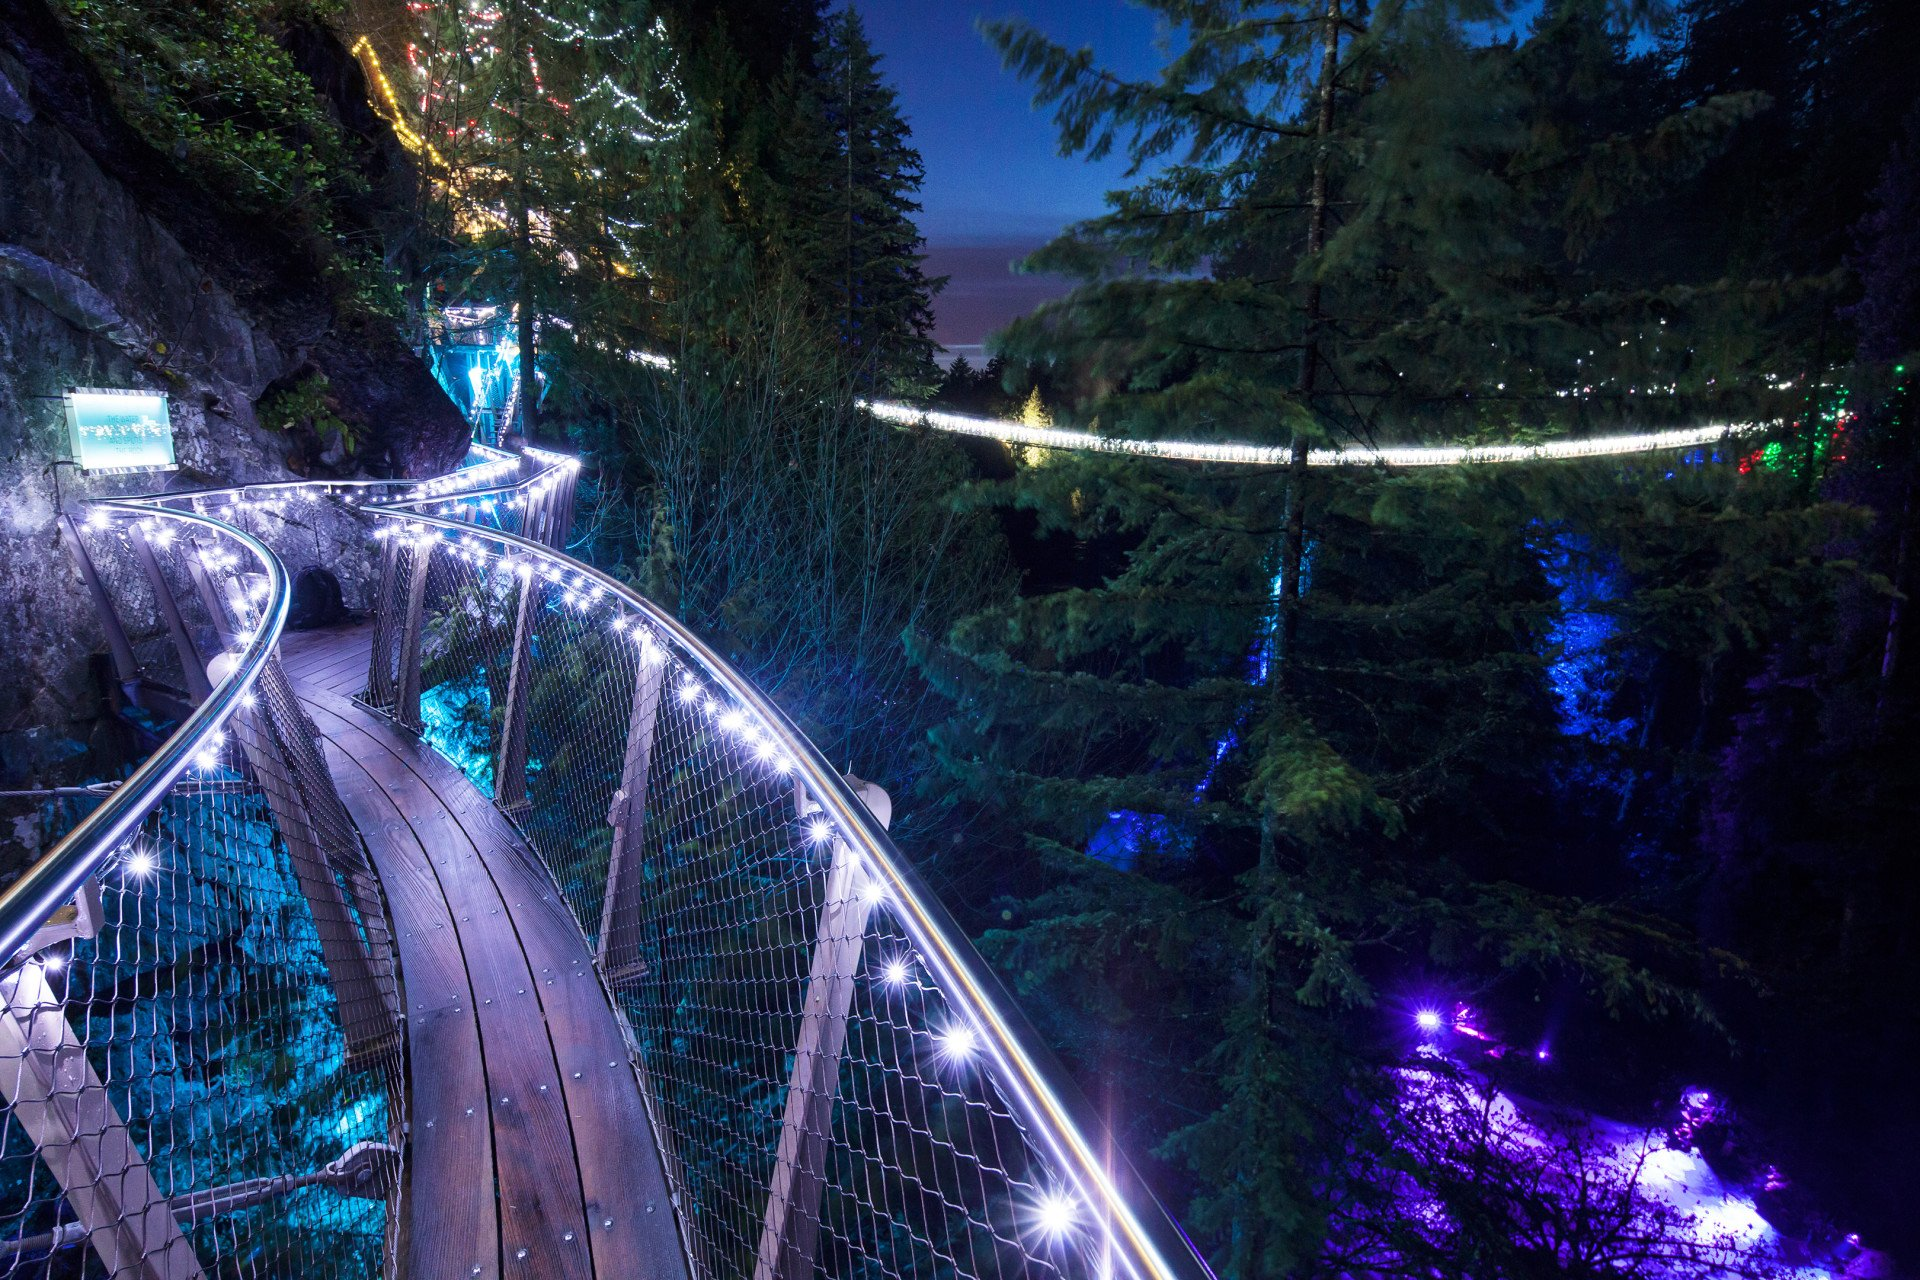 Canyon Lights in Vancouver 2020 - Best Time